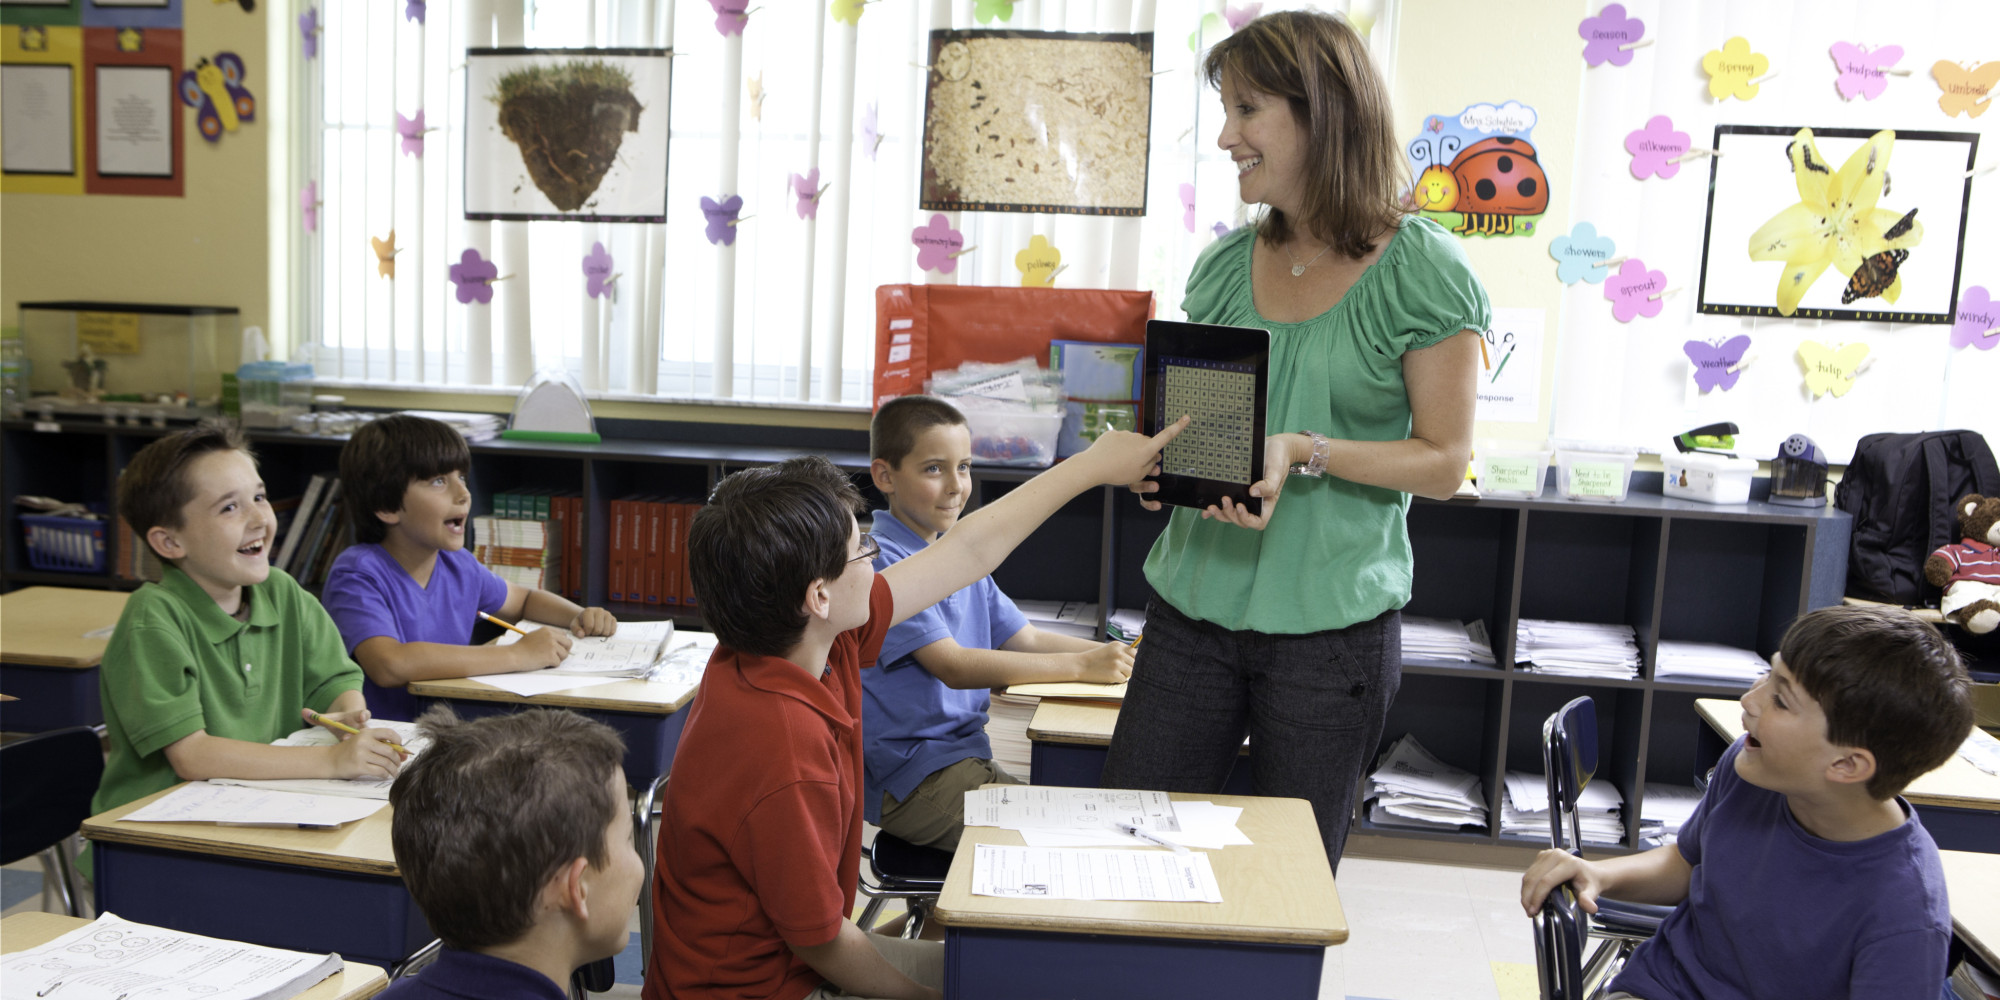 Elementary Classrooms Technology Use ~ Ways to use technology engage students better huffpost